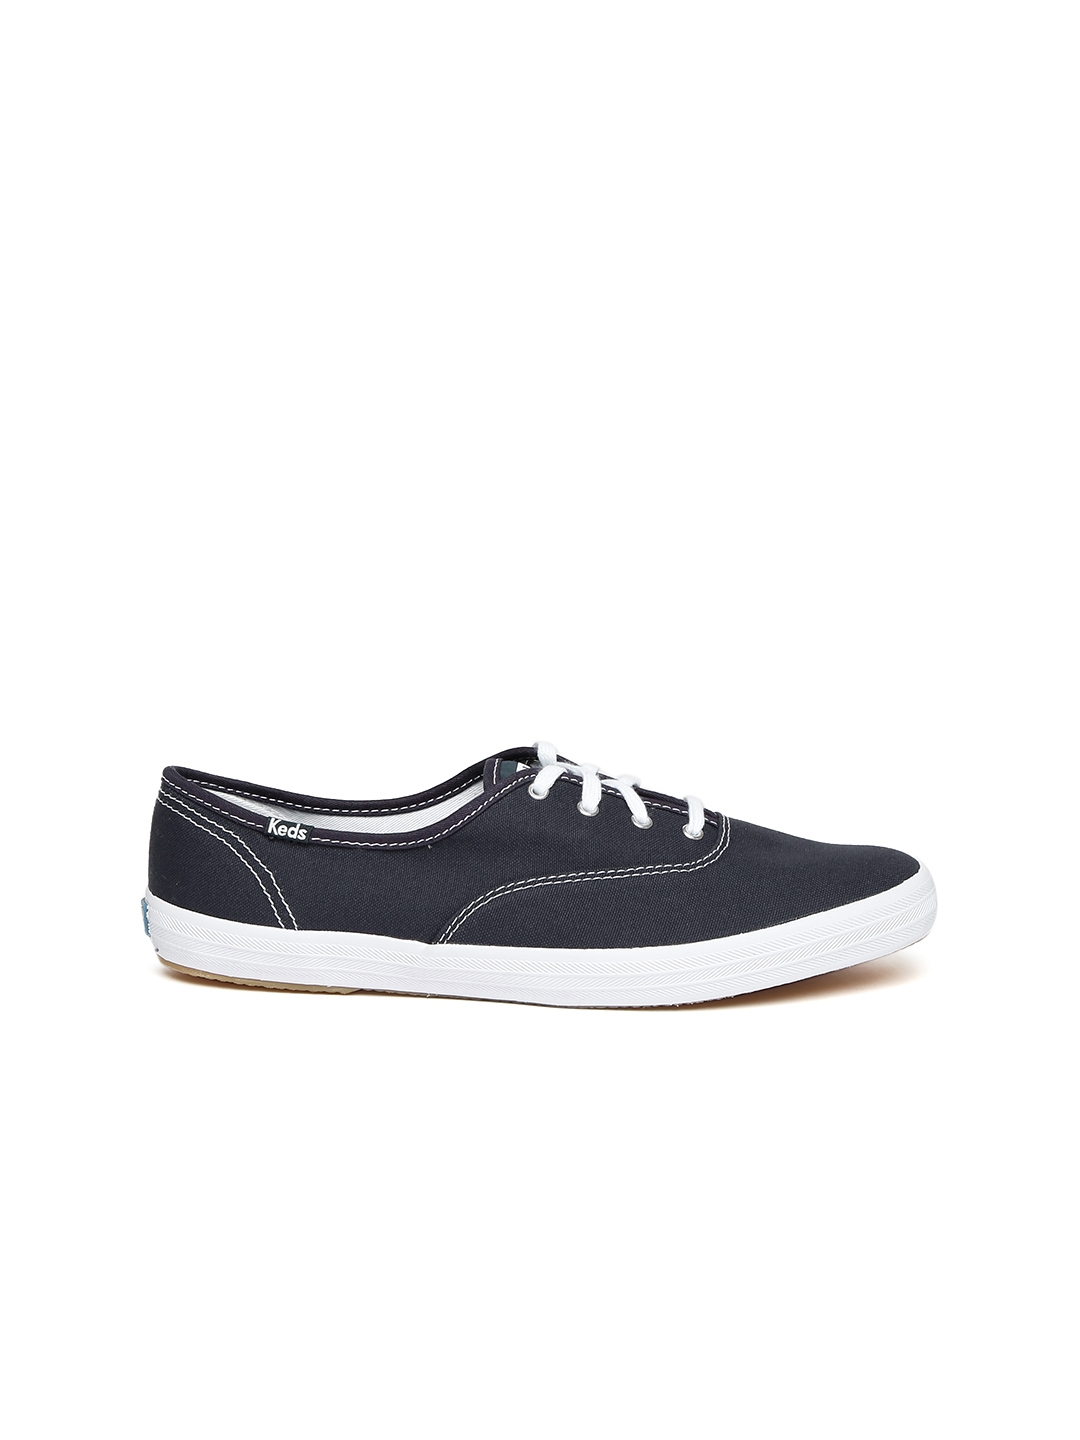 2e513b3f270f3 Buy Keds Women Navy Champion Solid Sneakers - Casual Shoes for Women ...